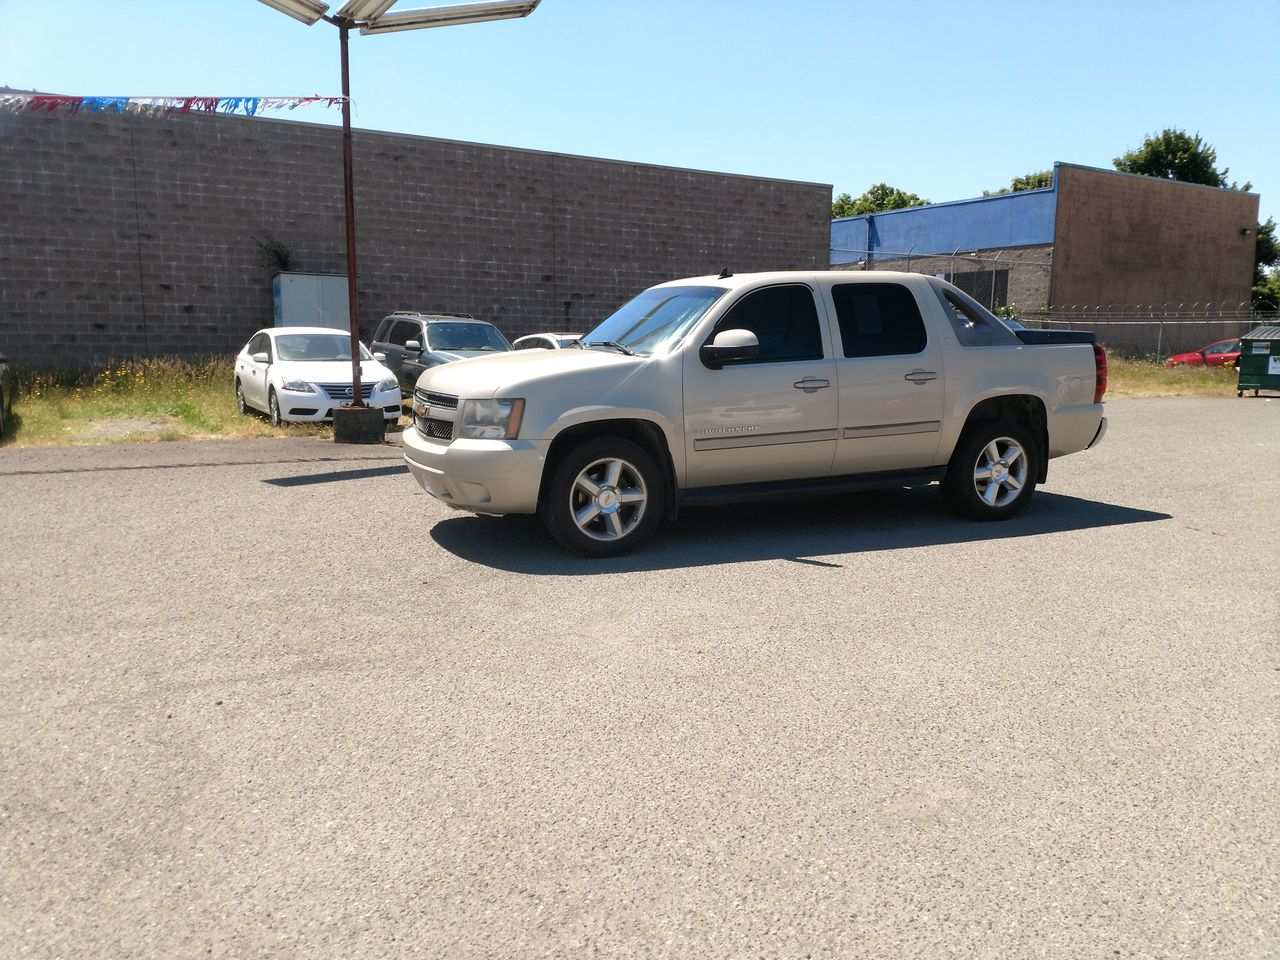 Pre-Owned 2007 CHEVROLET AVALANCHE LT Sport U